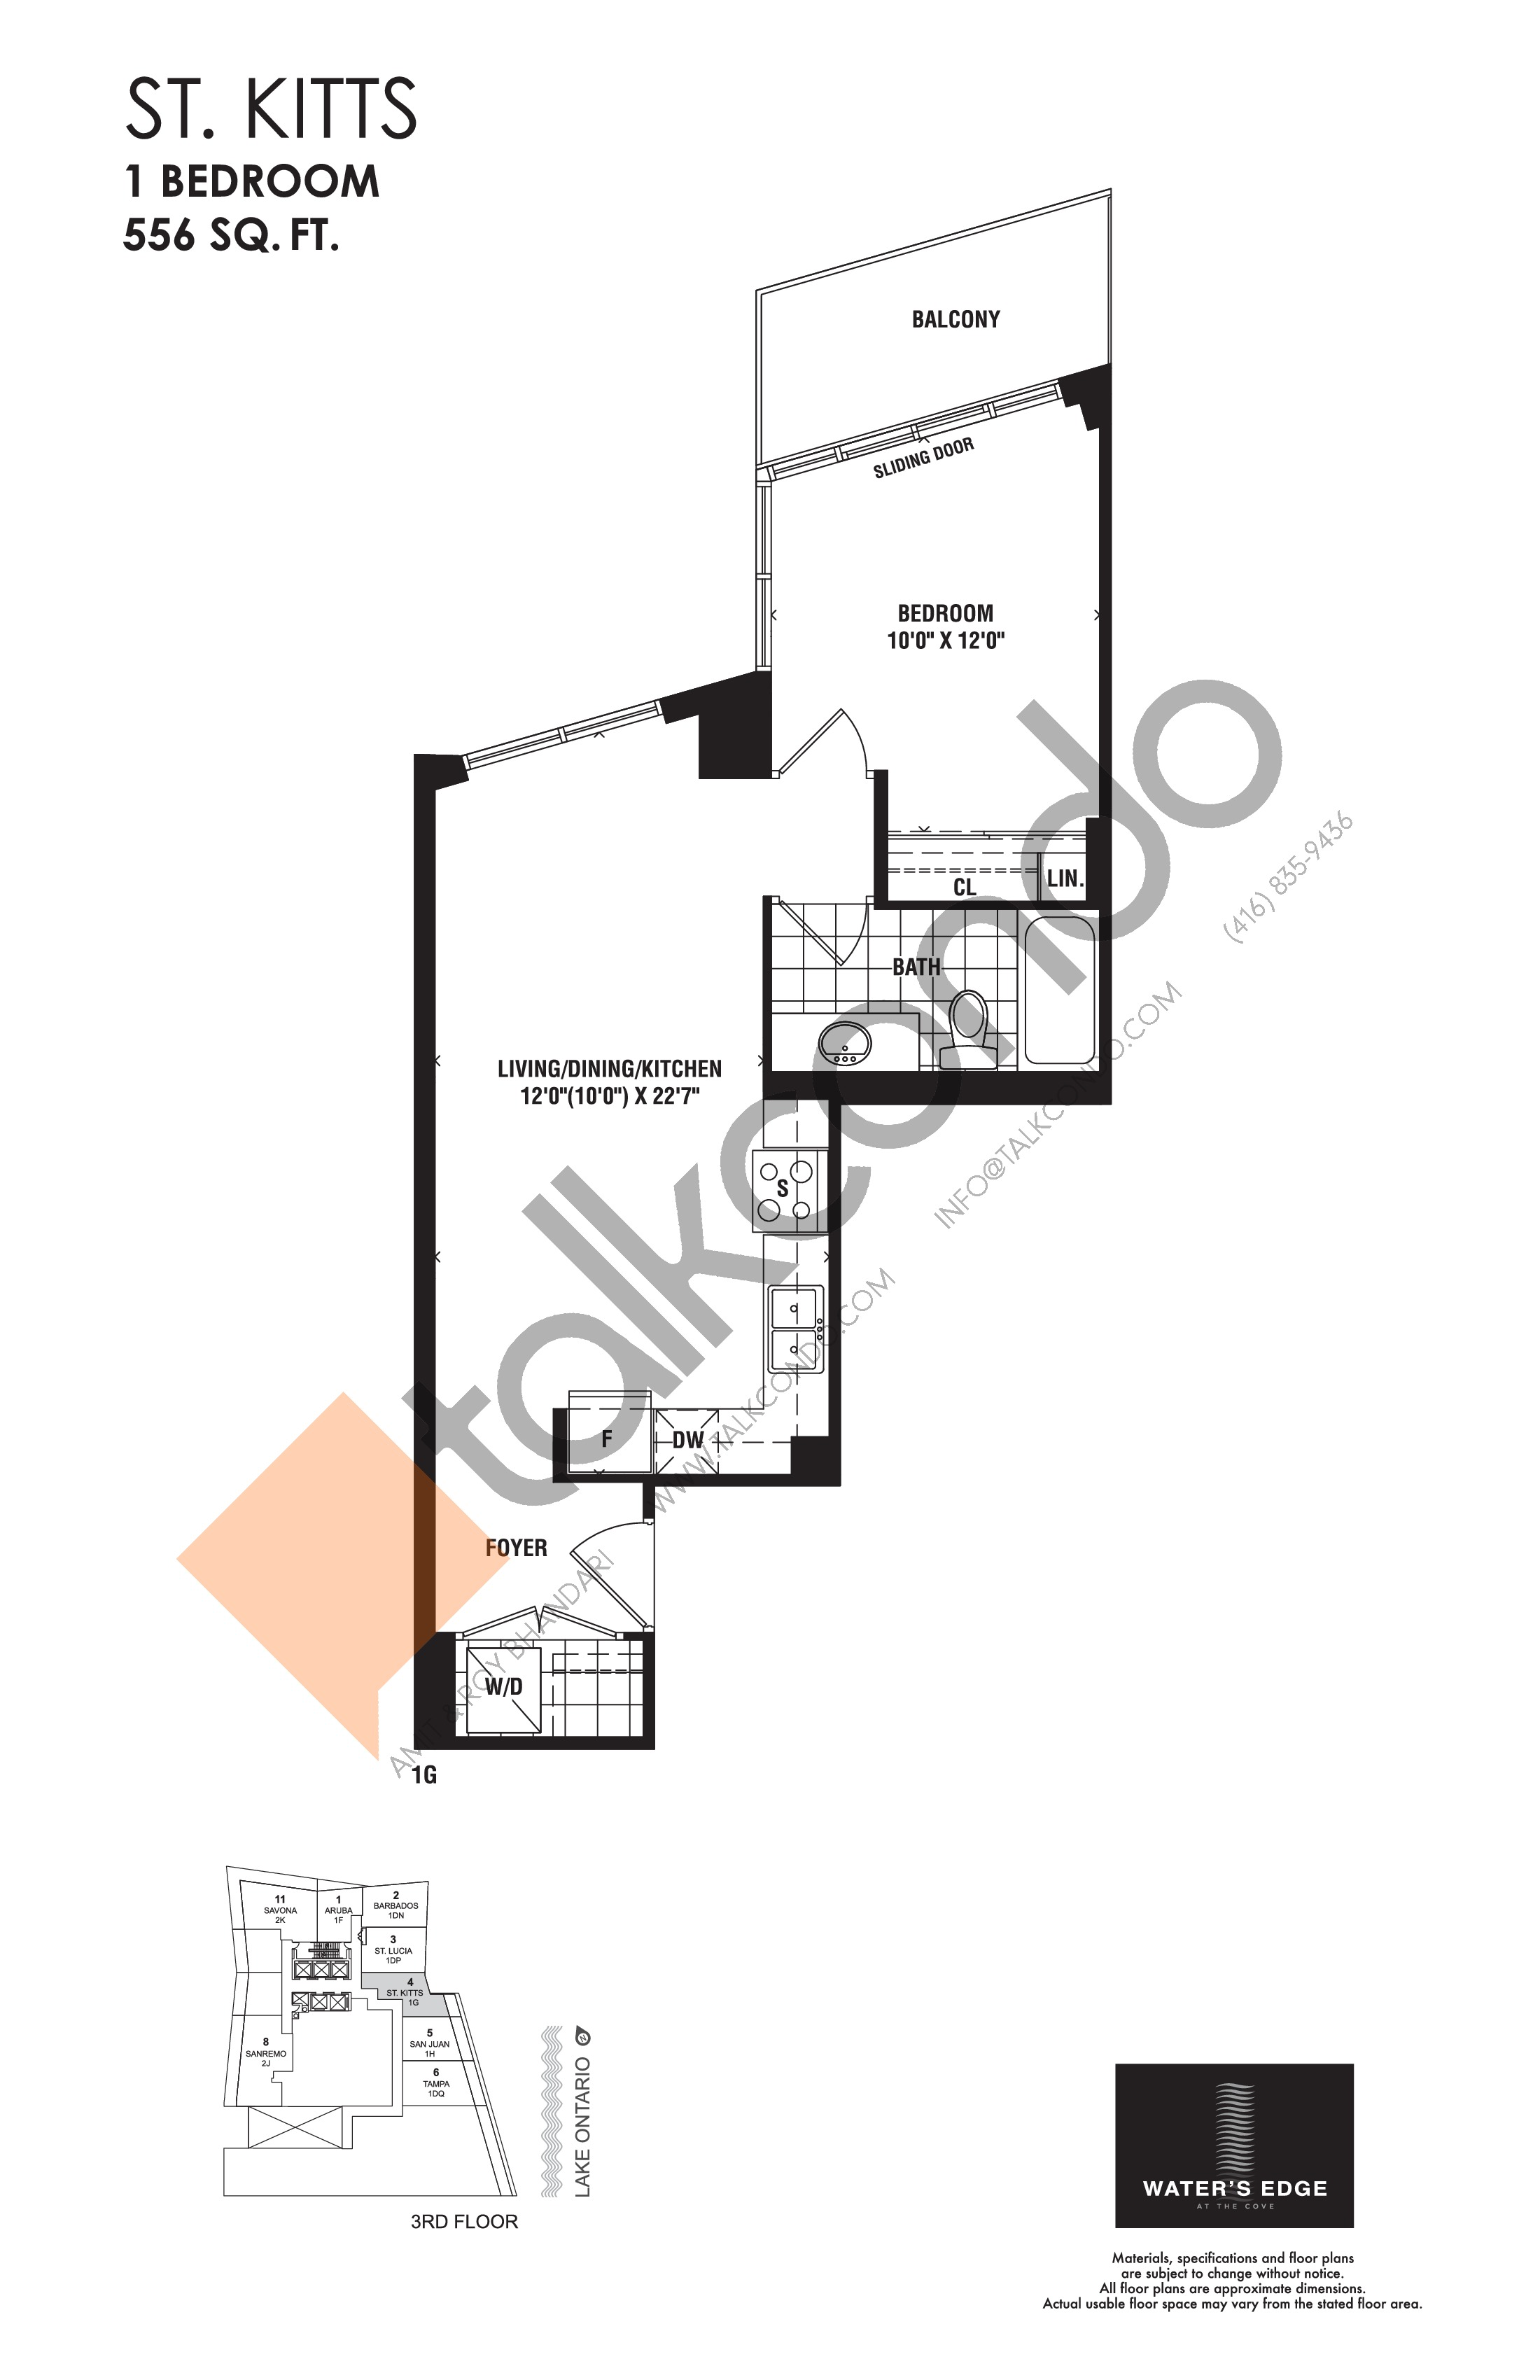 St. Kitts Floor Plan at Water's Edge at the Cove Condos - 556 sq.ft